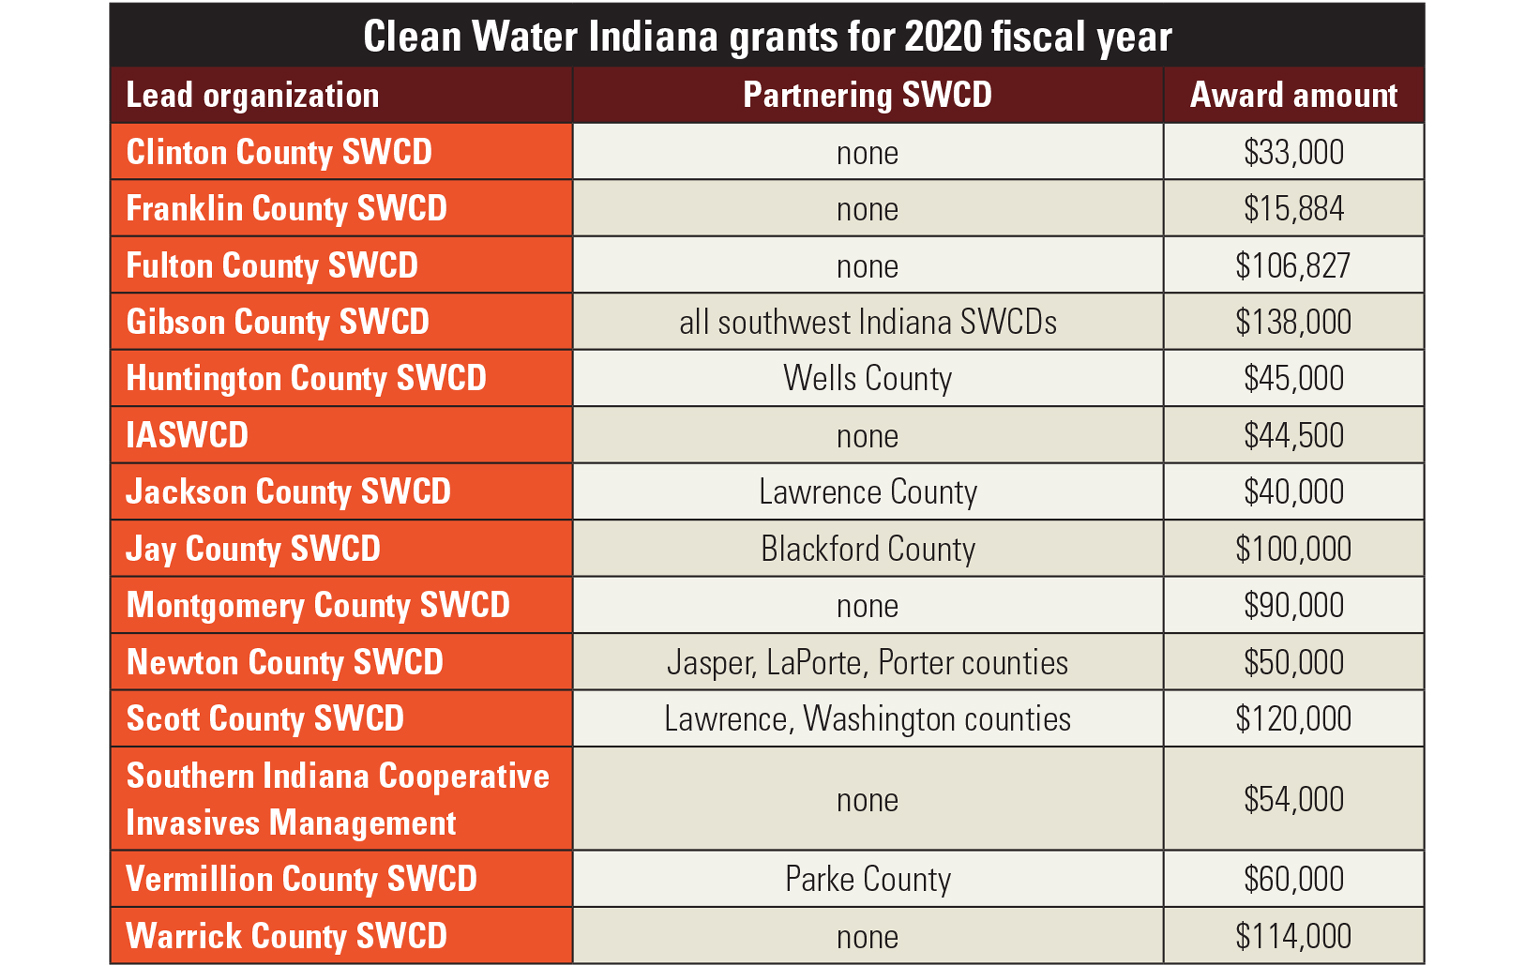 chart of Clean Water Indiana grants for 2020